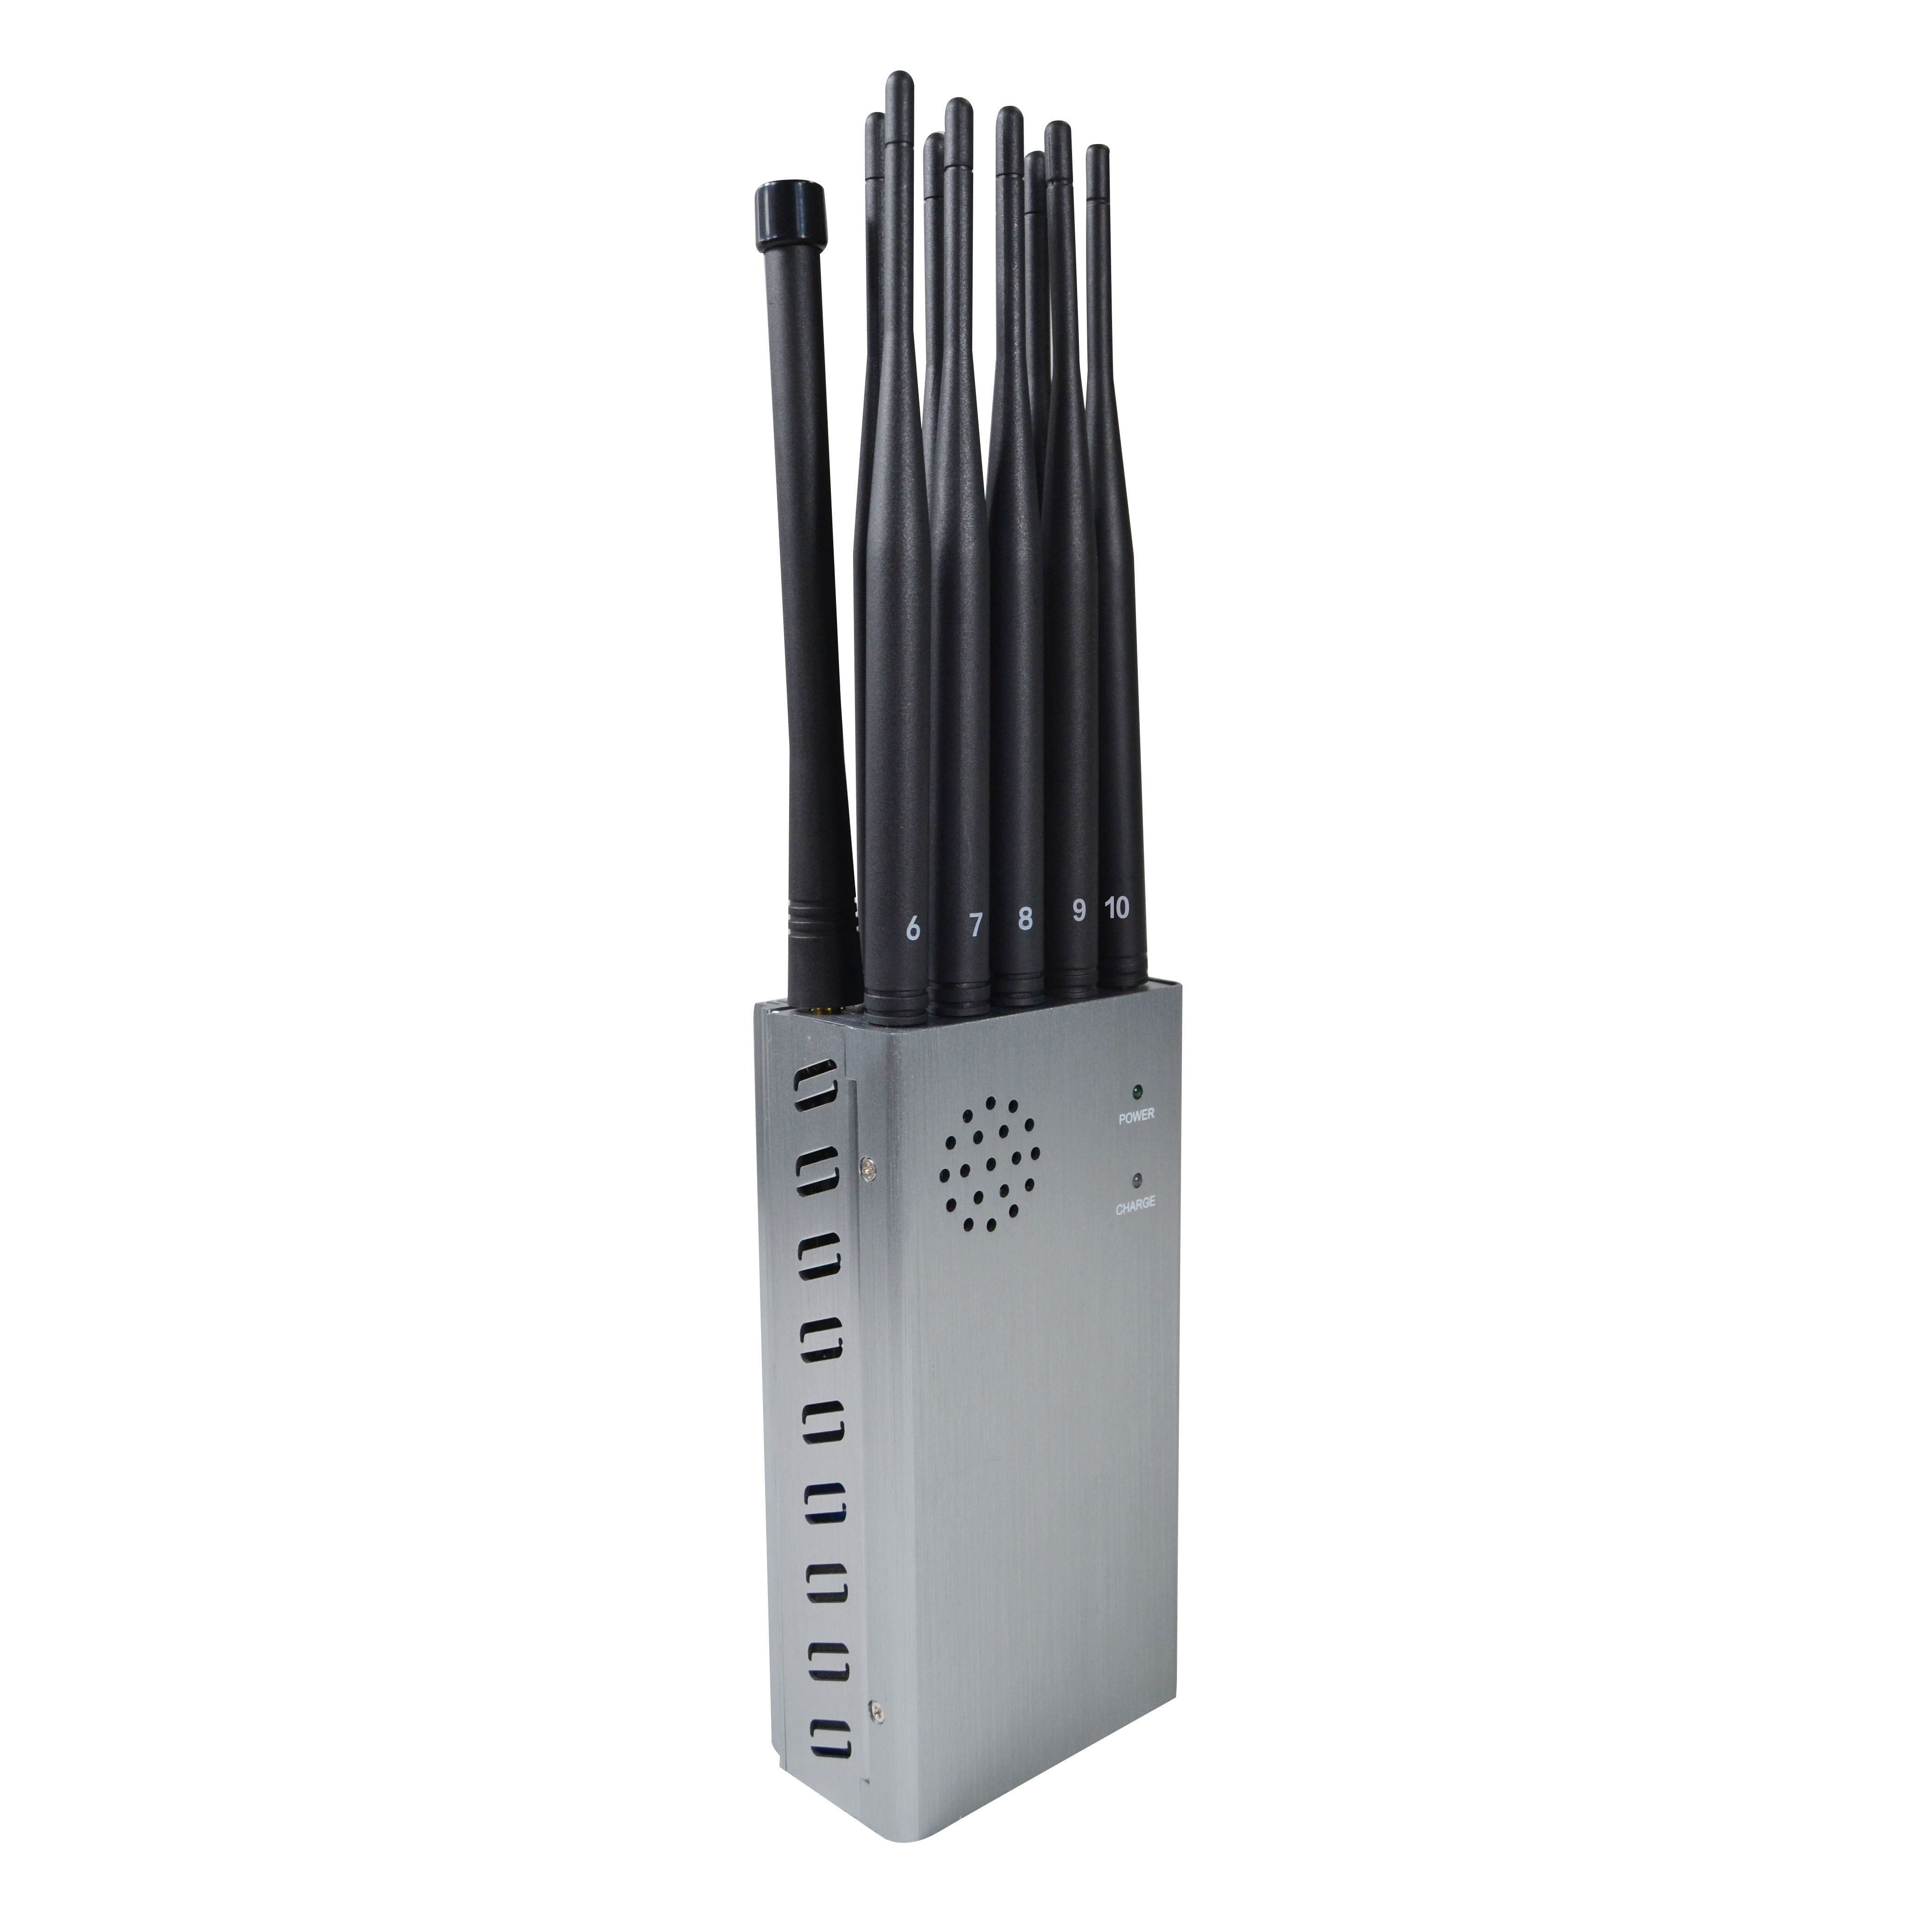 4g - China Newest Model Cpjp10 Full Band Portable Jammers with High Power Battery up to 8000mA - China Mobile Phone Jammer, Full Band Signal Blockers